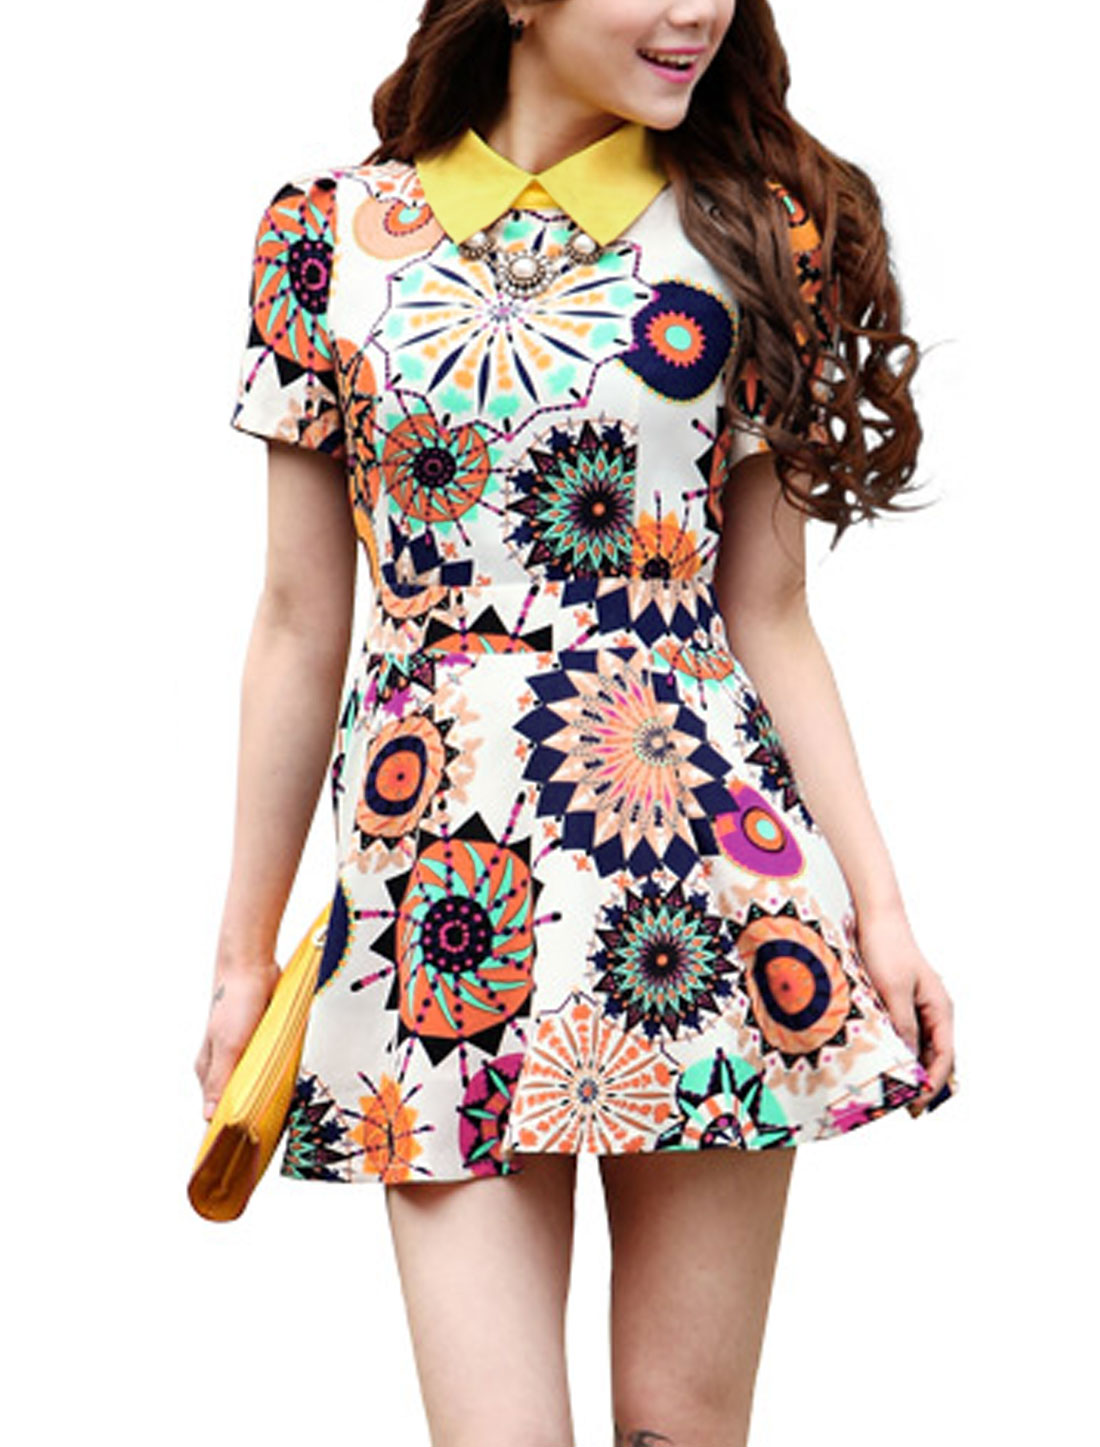 Lady Geometric Prints Conceal Zipper Back Lining Dress Beige Bright Yellow M